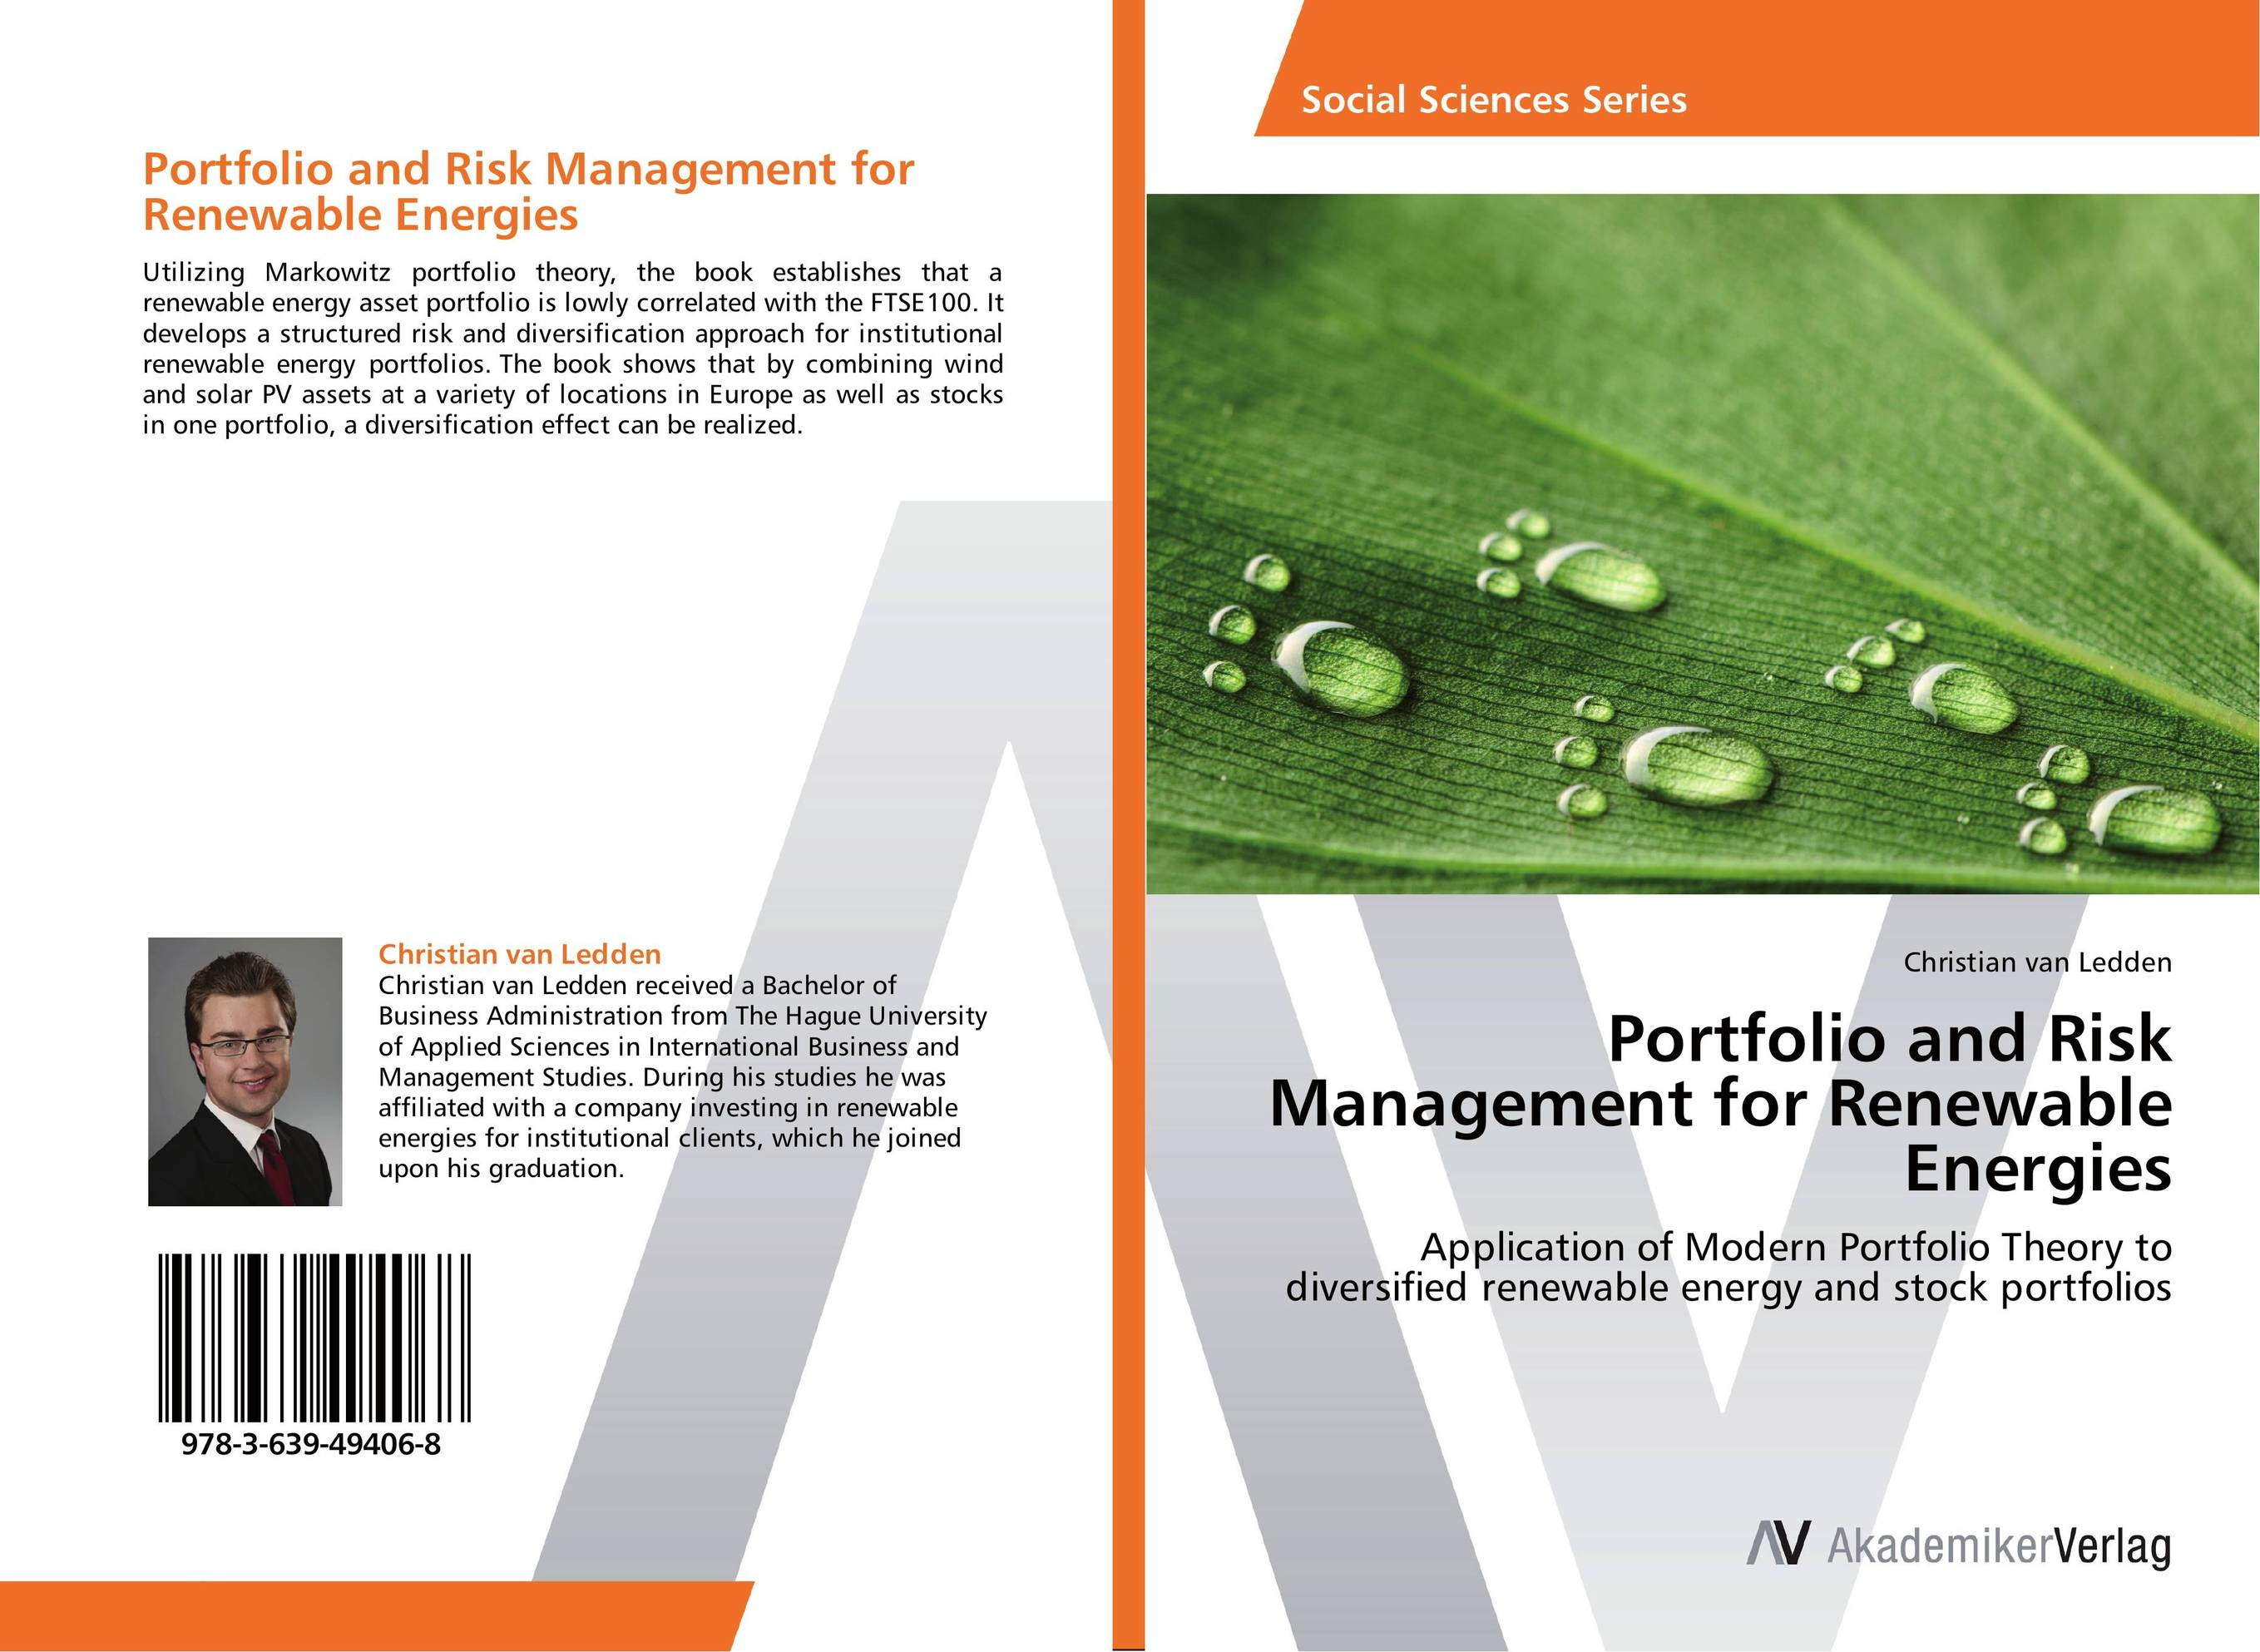 Portfolio and Risk Management for Renewable Energies